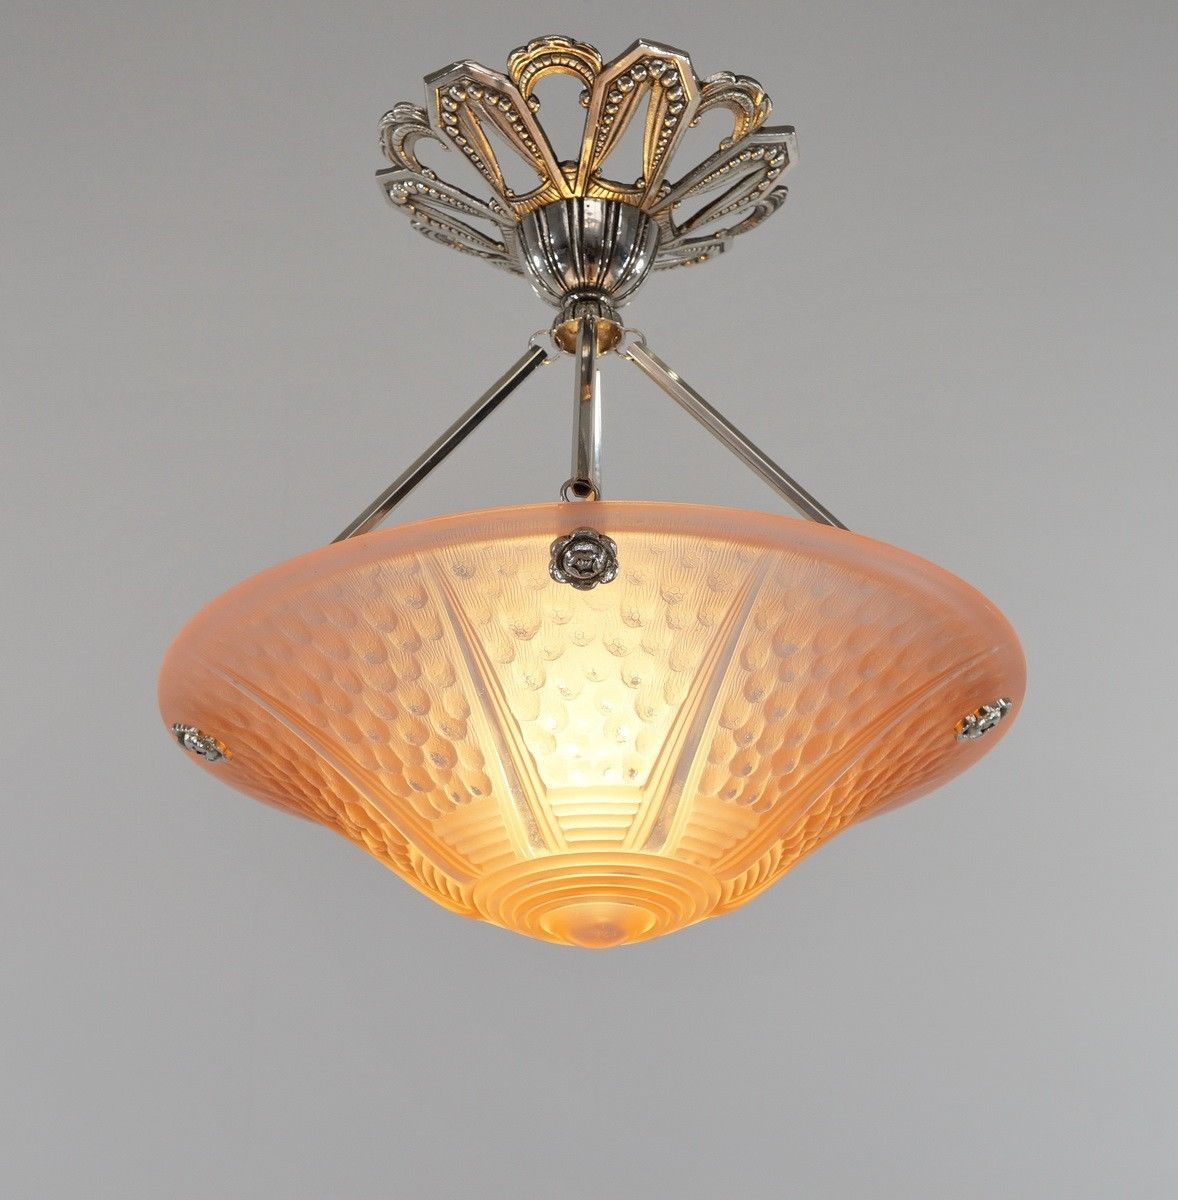 Muller Freres Petitot French 1930 Art Deco Chandelier Lamp Ceiling Fixture